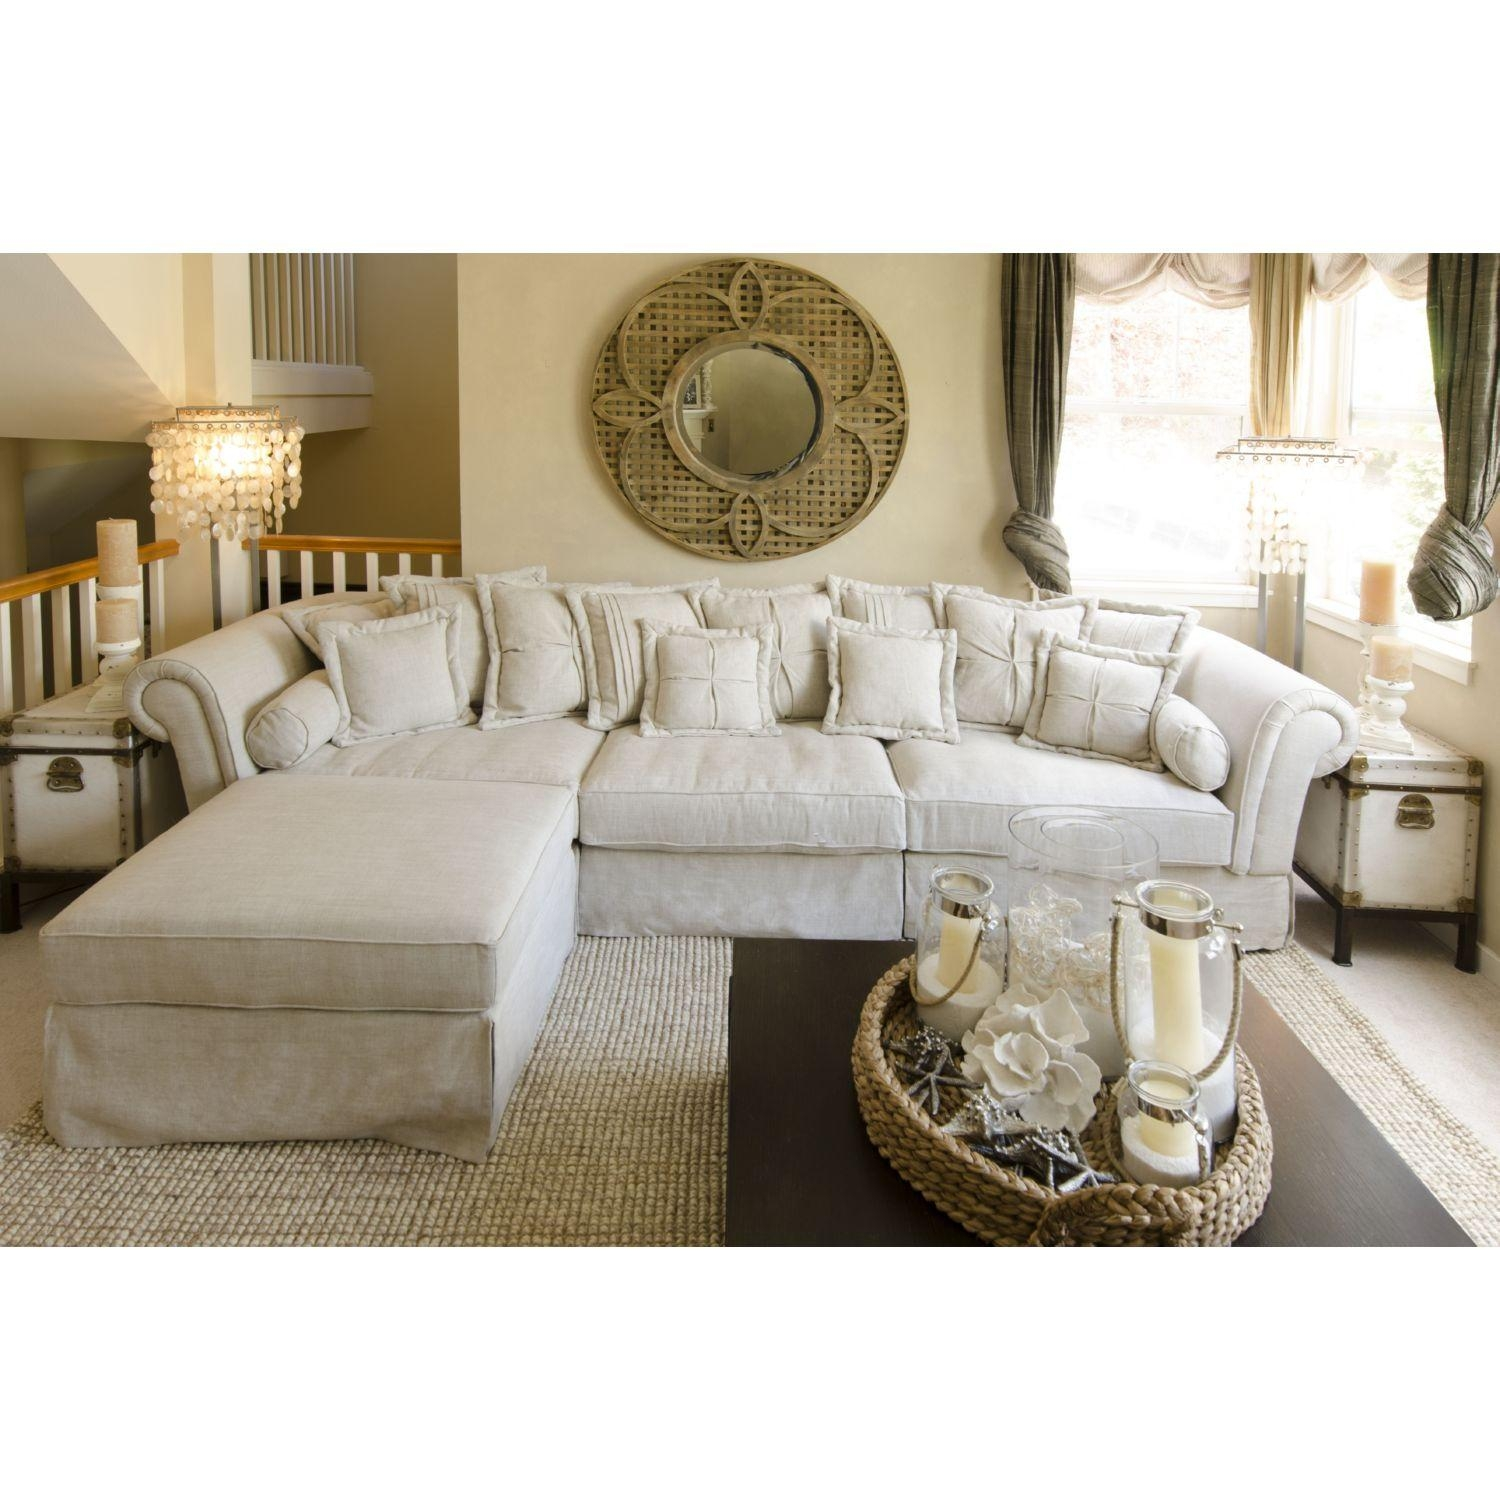 20 Collection Of Shabby Chic Sofas Cheap Sofa Ideas